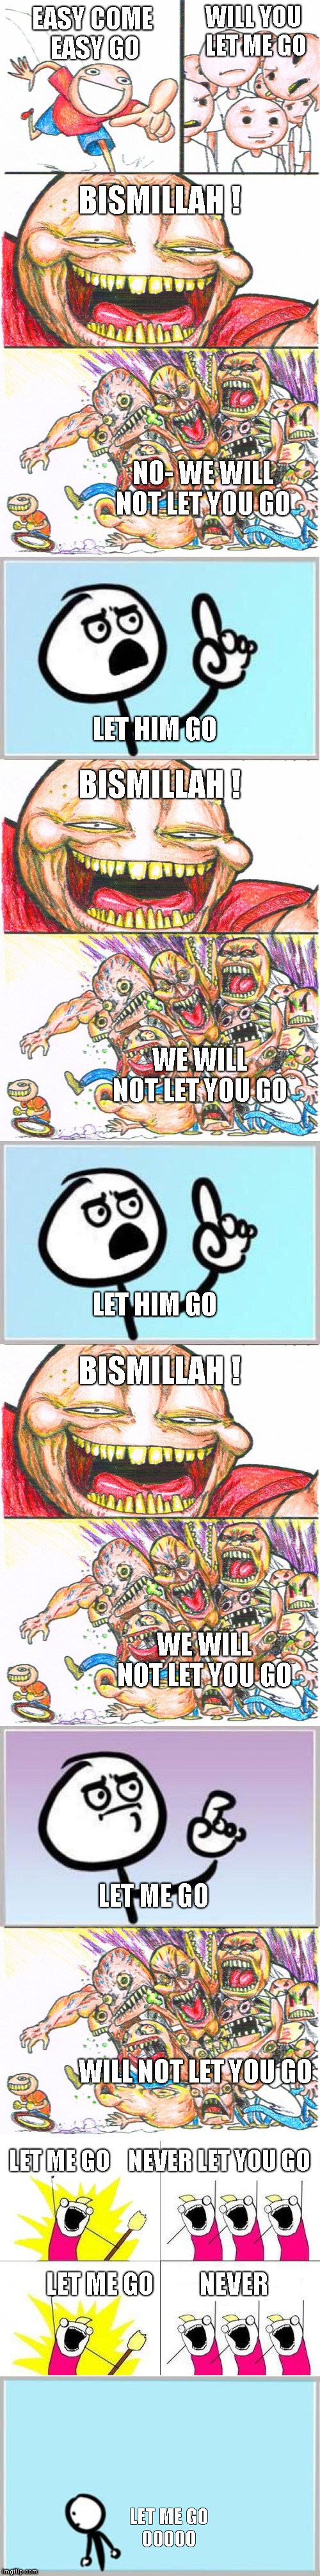 Queen Bohemian Rhapsody Chorus 2a | EASYCOME EASY GO LET ME GO   OOOOO BISMILLAH ! NO- WE WILL NOT LET YOU GO LET HIM GO BISMILLAH ! WE WILL NOT LET YOU GO LET HIM GO BISMILLA | image tagged in memes,song lyrics,queen,bohemian rhapsody | made w/ Imgflip meme maker